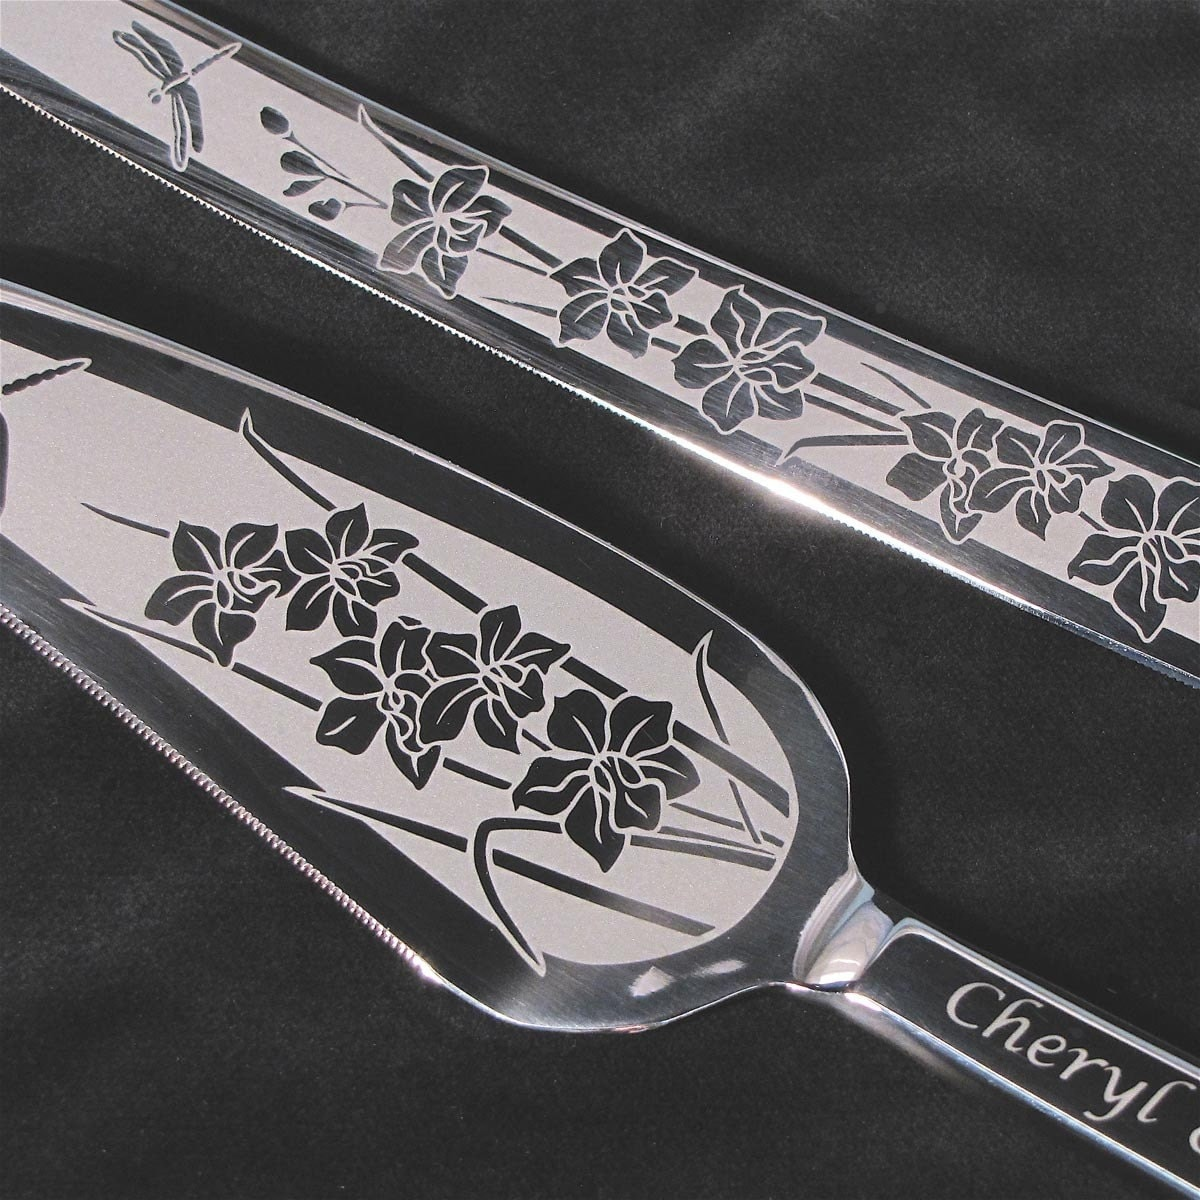 Orchid Dragonfly Wedding Cake Server And Knife Set Engraved